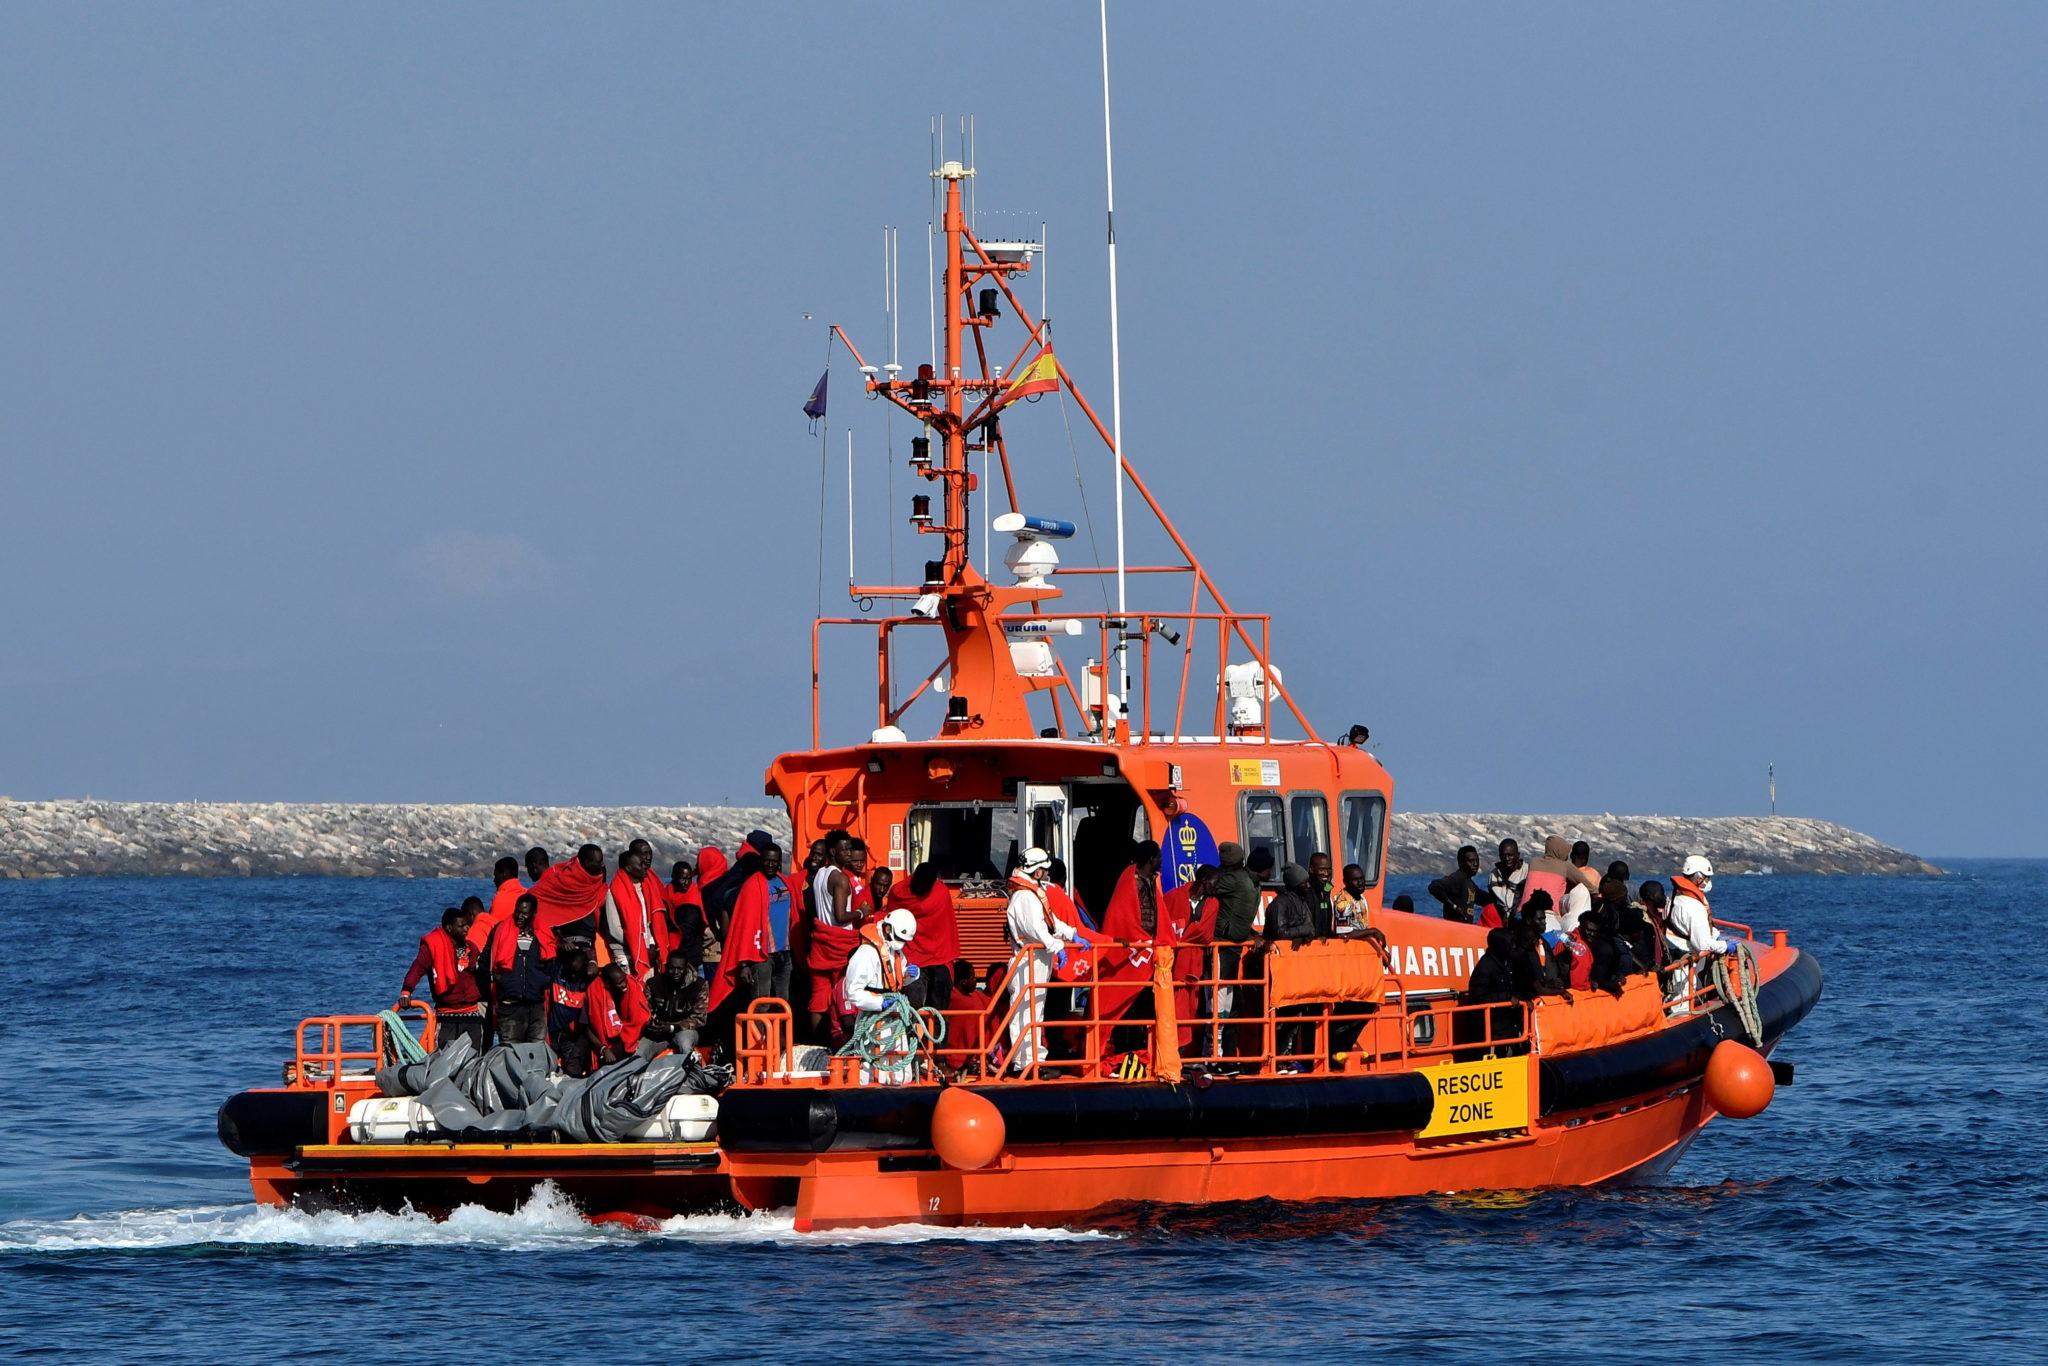 epa07667191 A hundred undocumented migrants arrive to the port on a Sea Rescue boat after they were rescued sailing on two small canoes on the Alboran Sea in Almeria, southeastern Spain, 22 June 2019.  EPA/CARLOS BARBA  Dostawca: PAP/EPA.